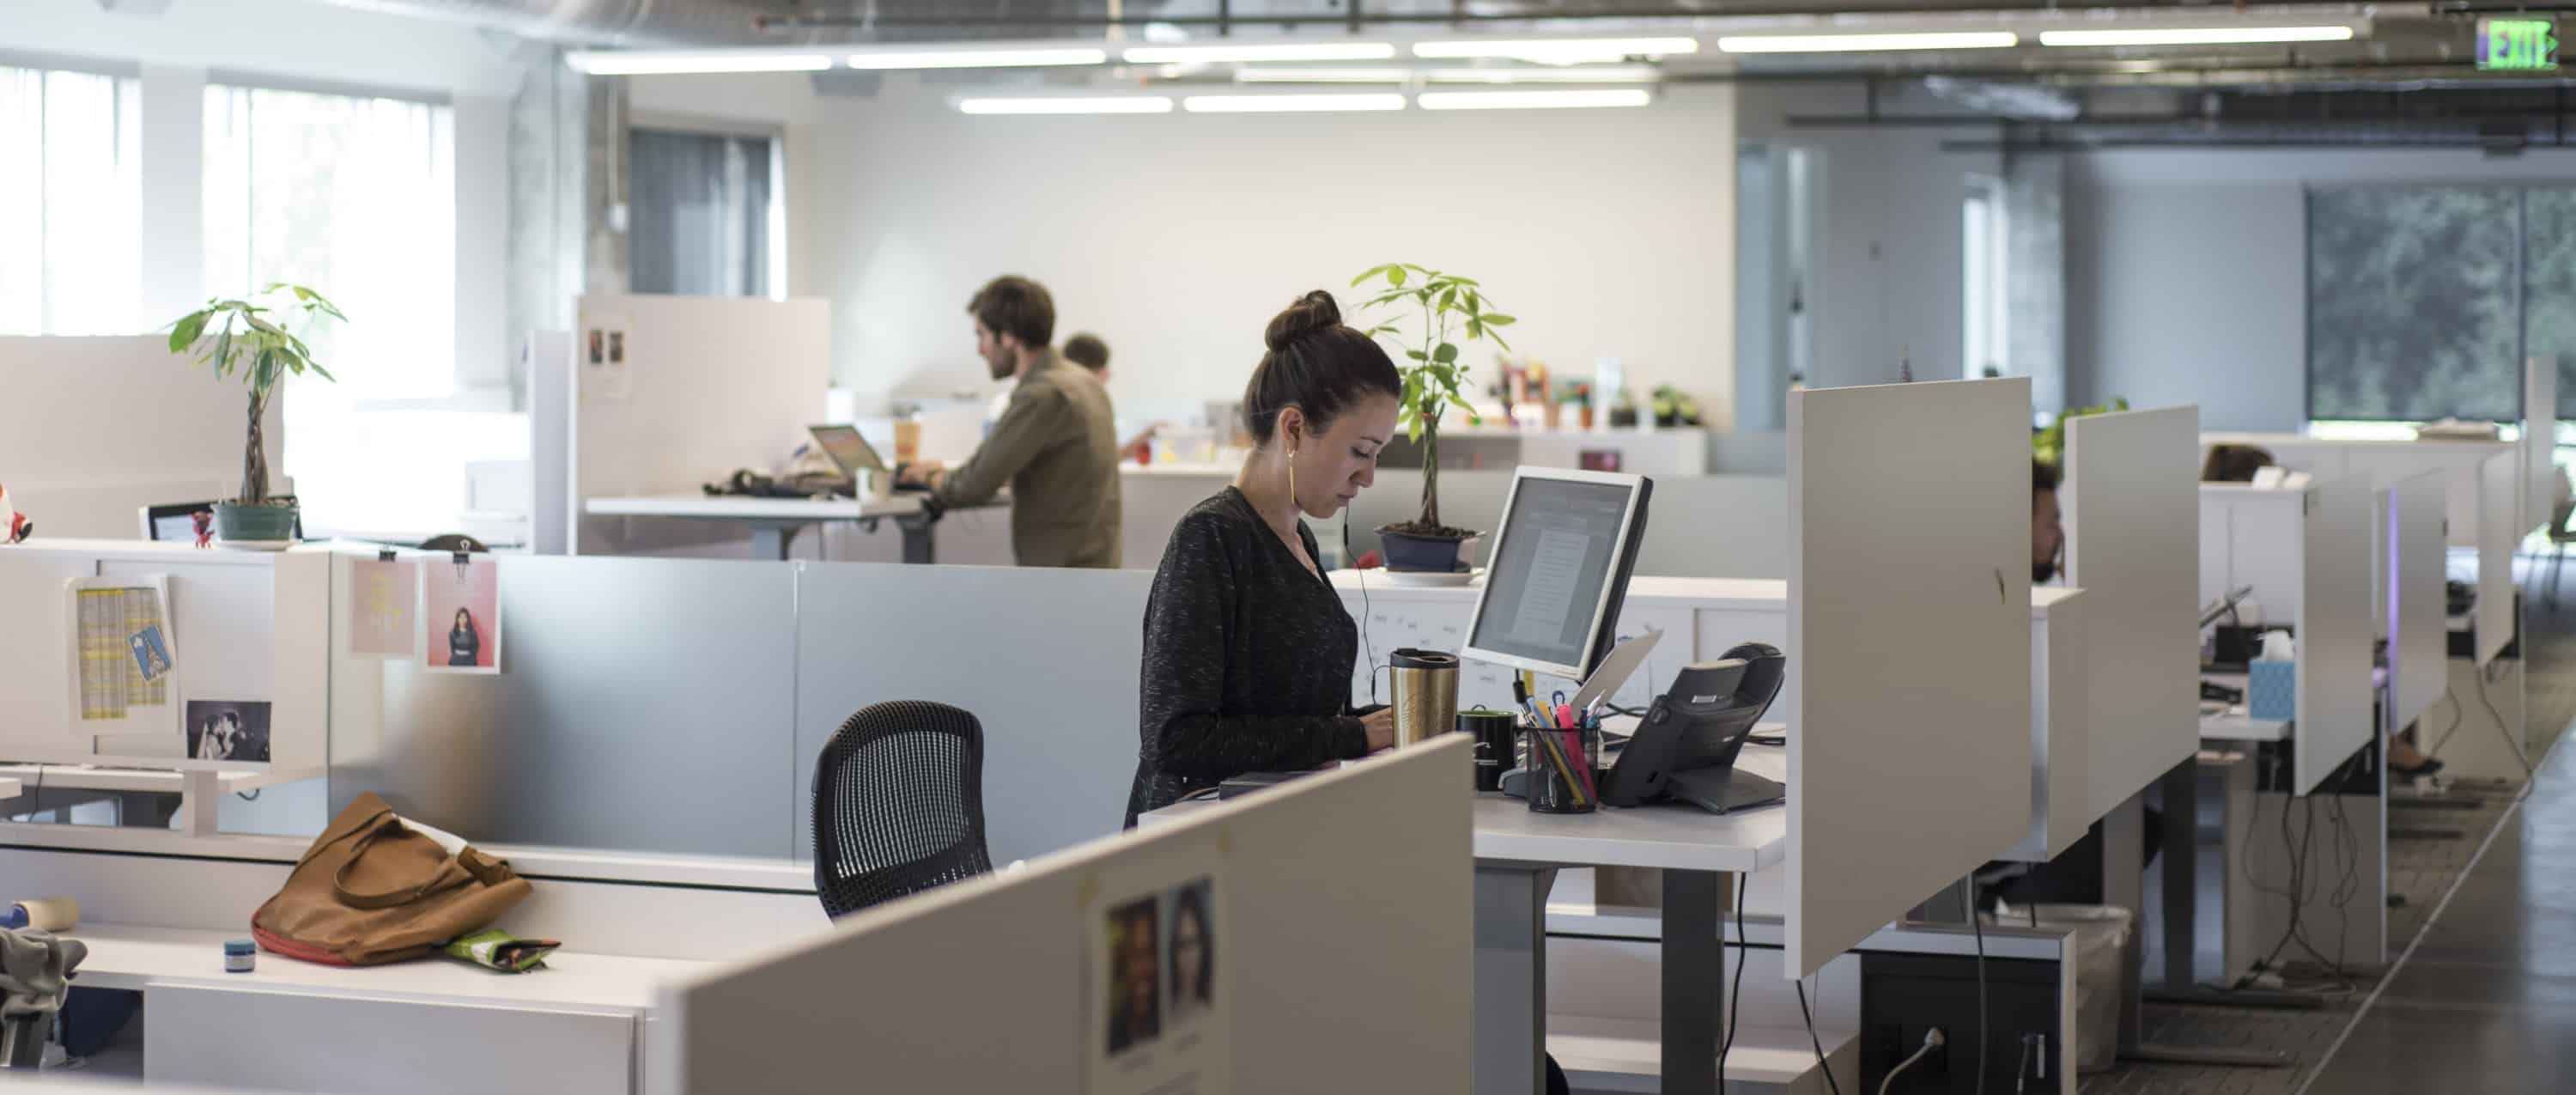 How Much Office Space Do I Need Calculator Per Person Standards